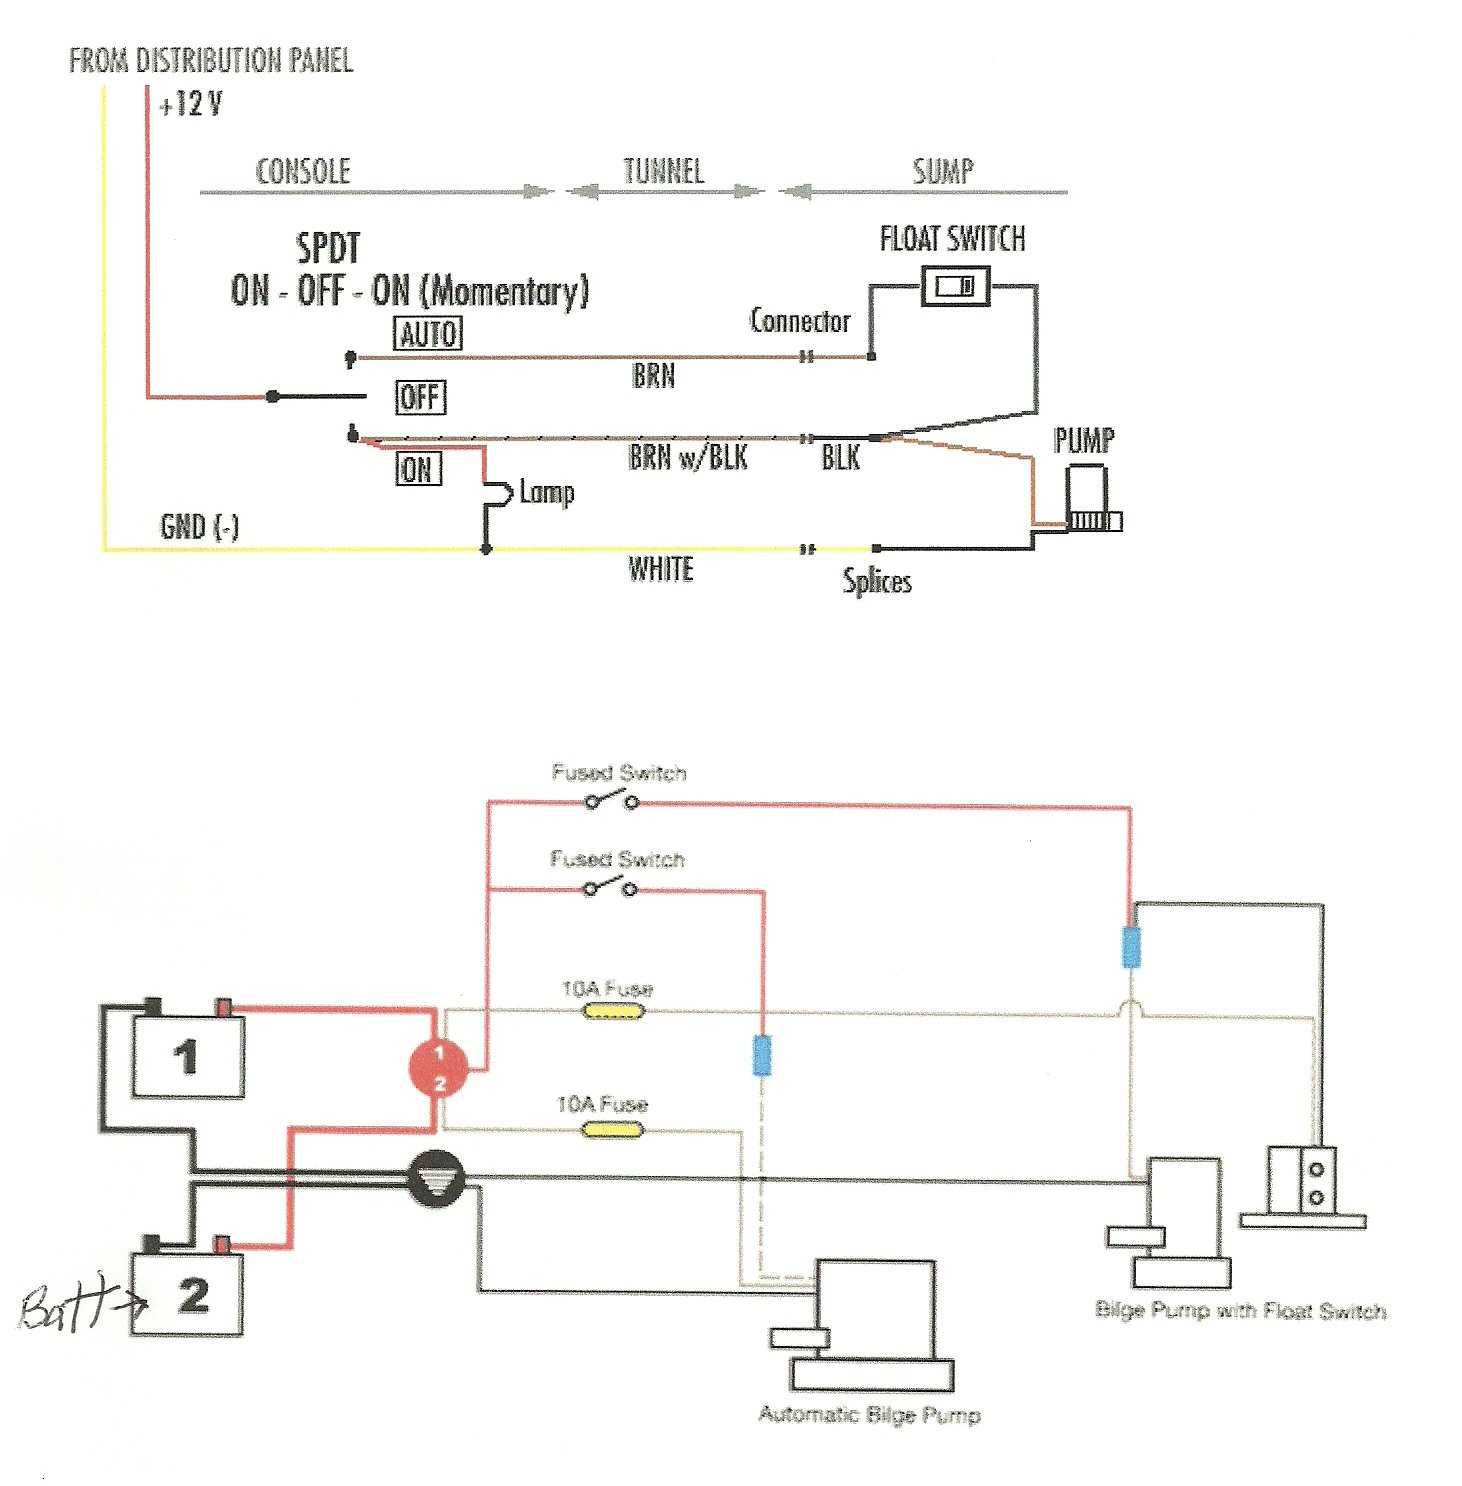 Shoreline Marine Bilge Pump 3 Way Switch Wiring Diagram